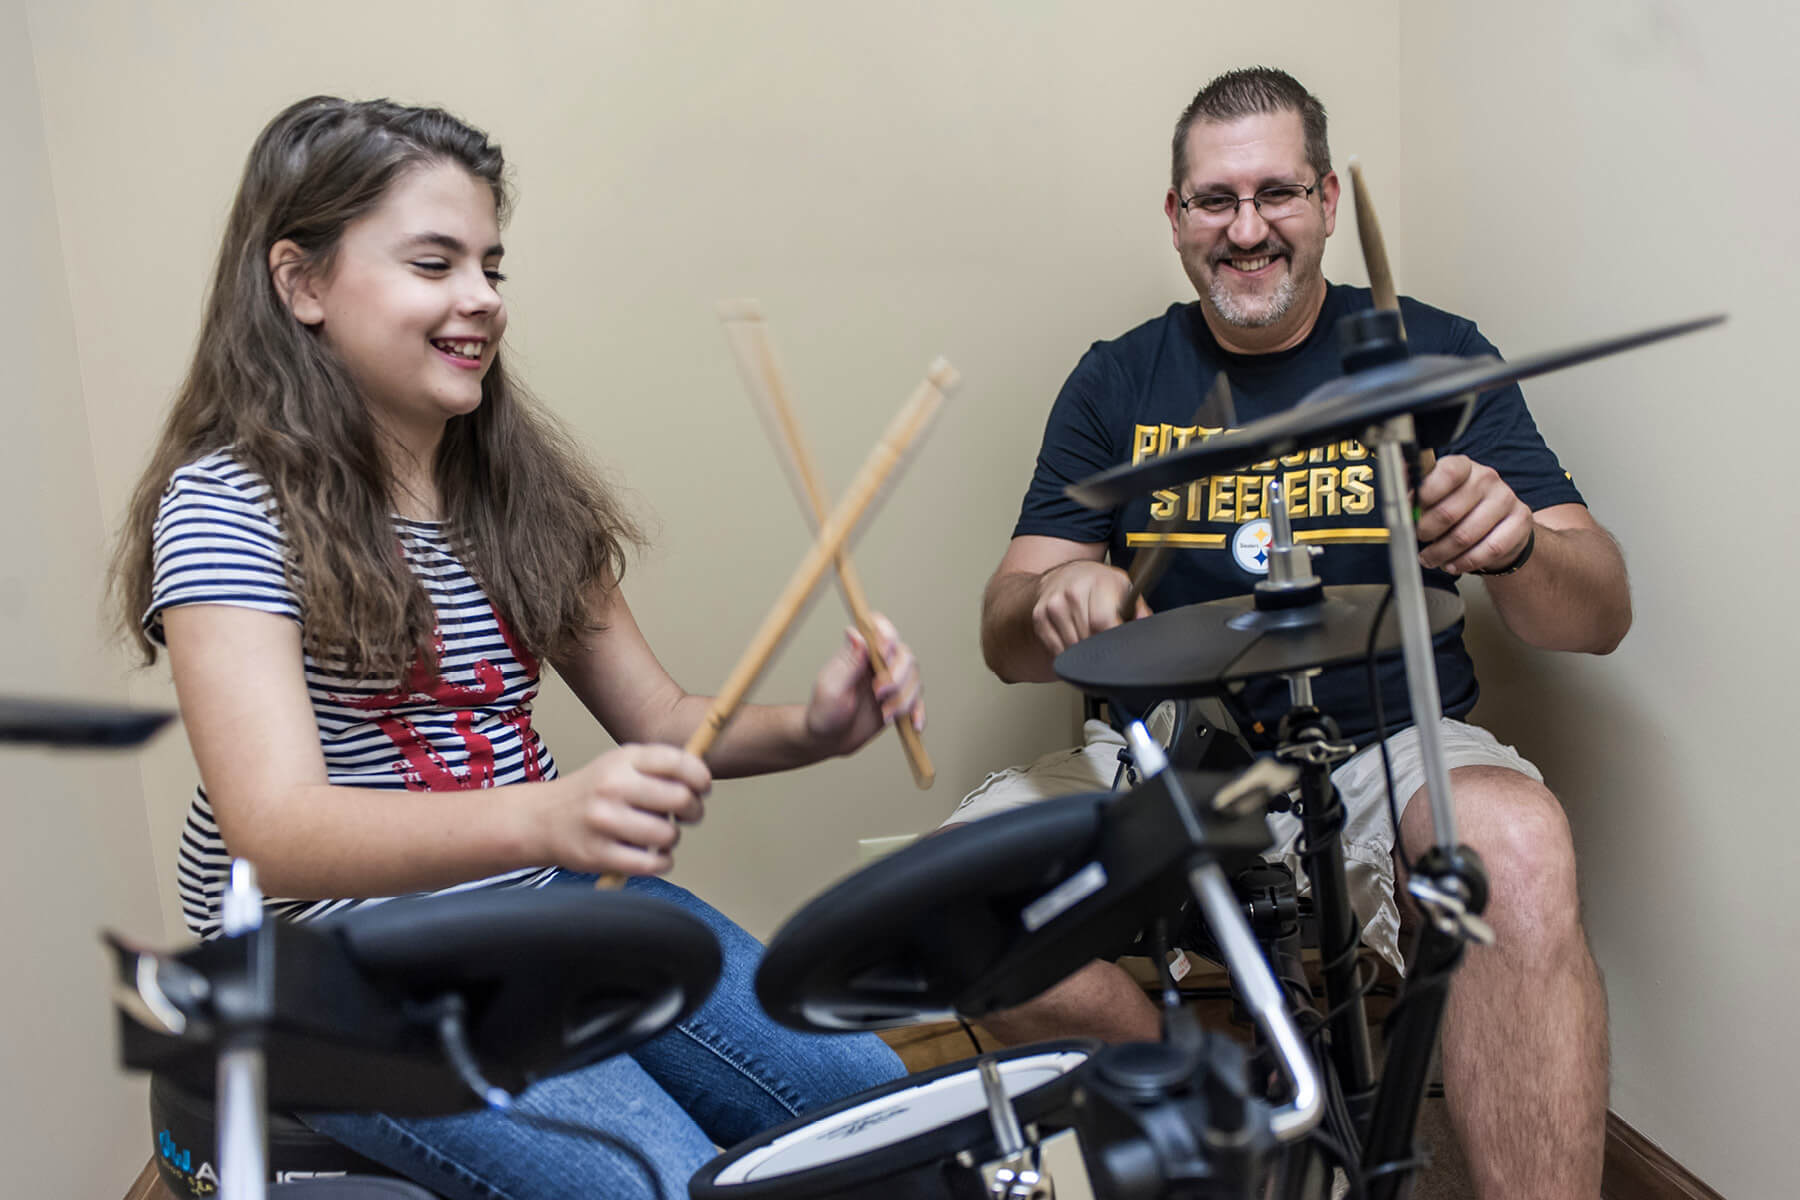 Student plays digital drum set with instructor.